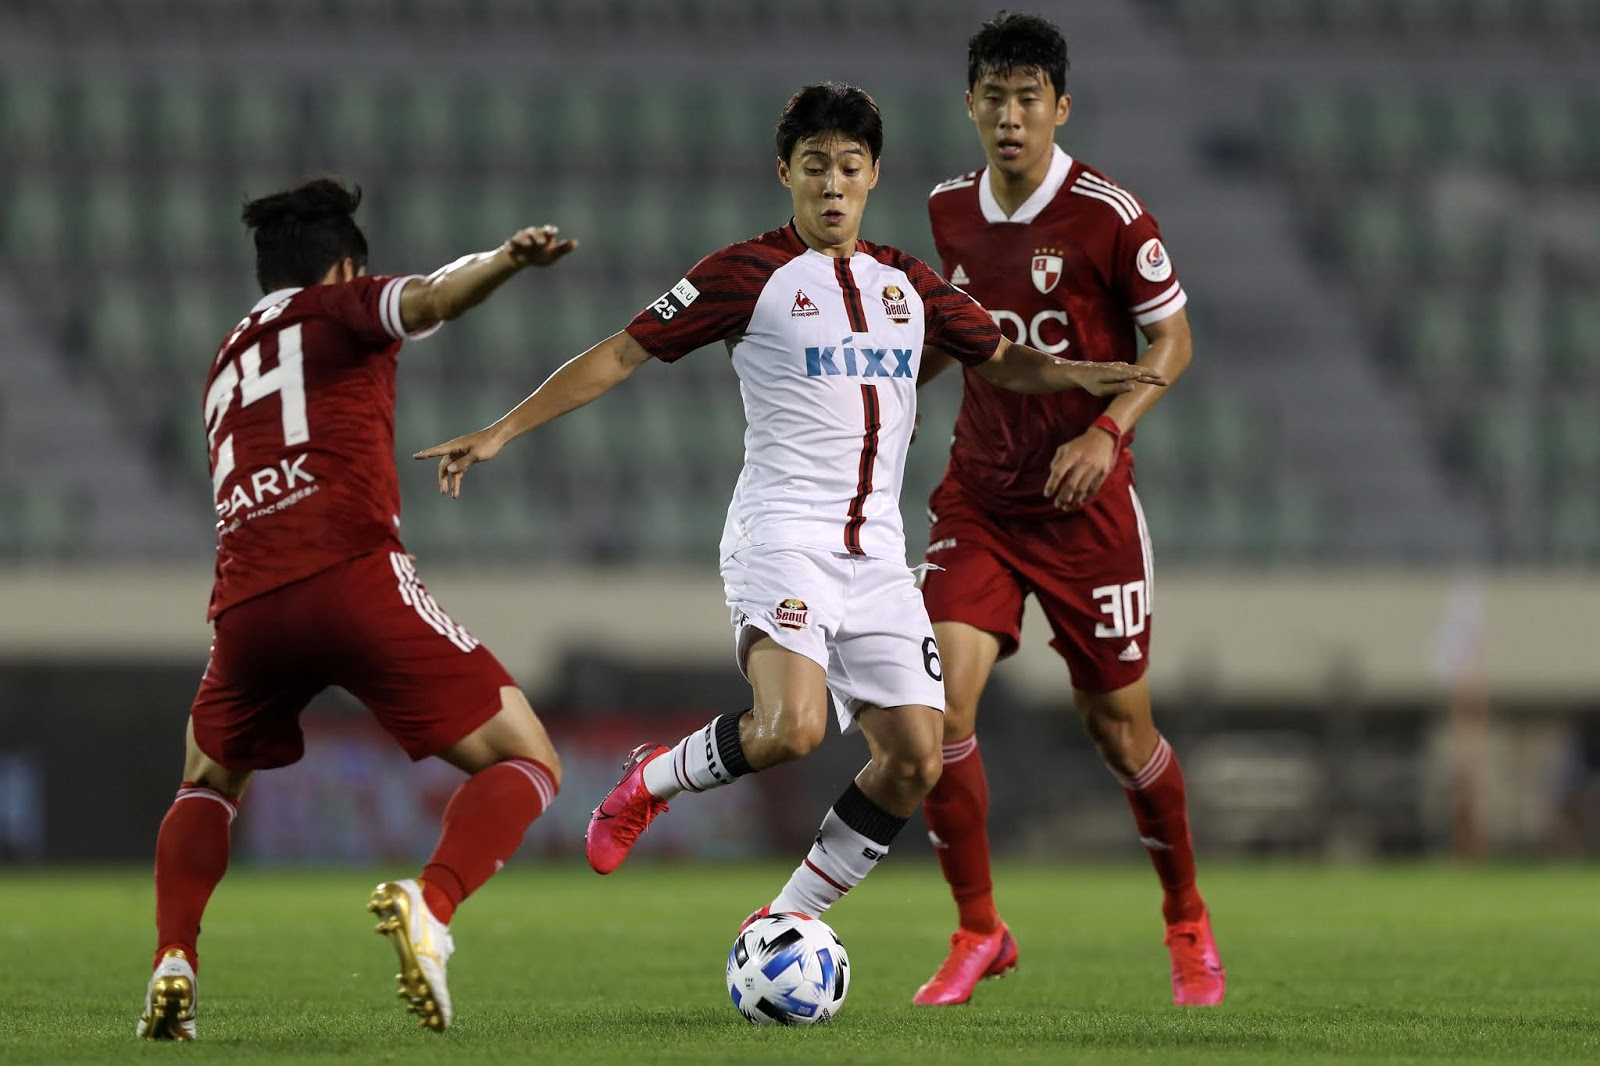 Preview: FC Seoul vs Busan IPark K League 1 Round 19